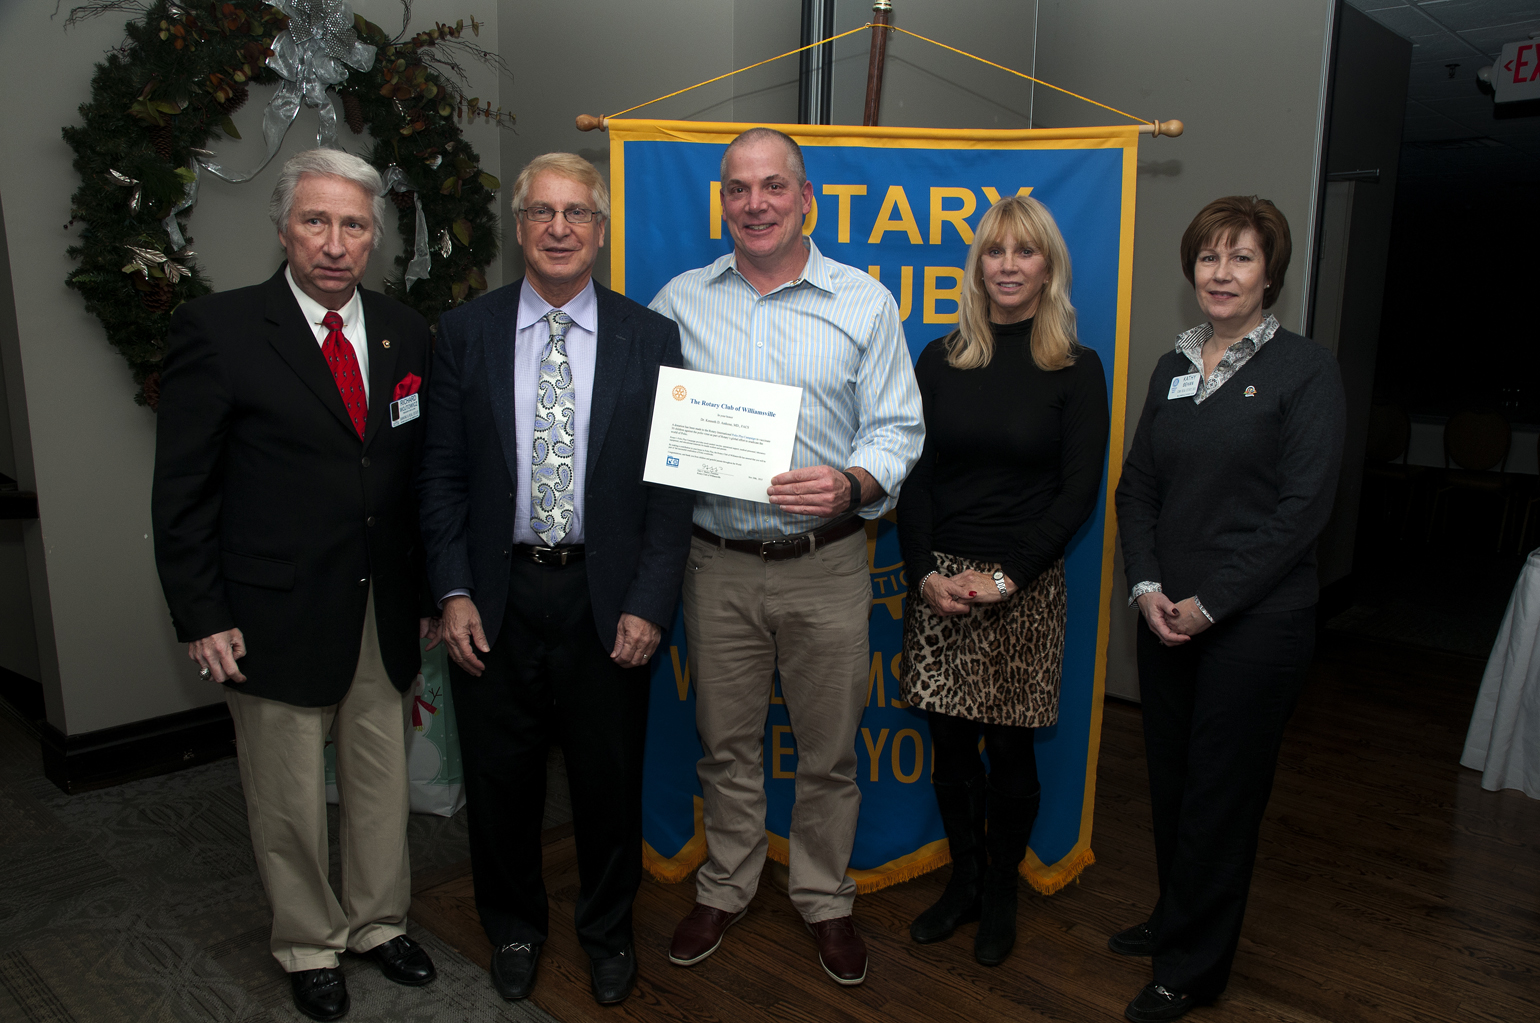 Williamsville Rotary Secretary and President-Elect Richard Wojtowicz, Kenneth Anthone M.D. of Atwal Eye Care, Rotary President Gary Skalyo, Eyes On America Foundation Executive Director Karen Anthone, and Rotary Past President Kathy Behan